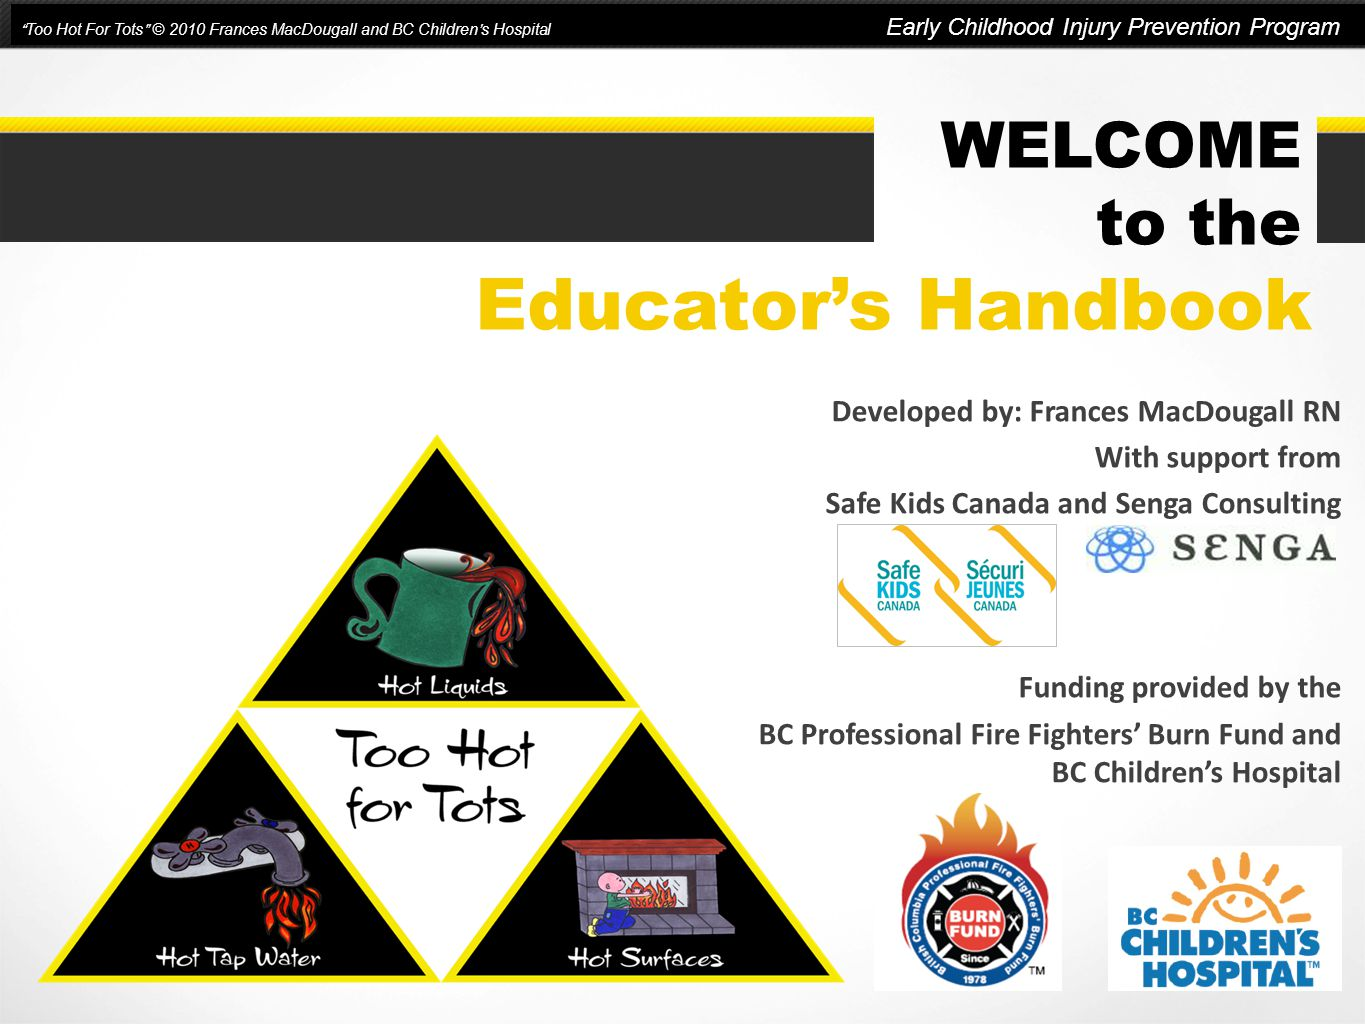 Educator's Handbook WELCOME to the Developed by: Frances MacDougall RN